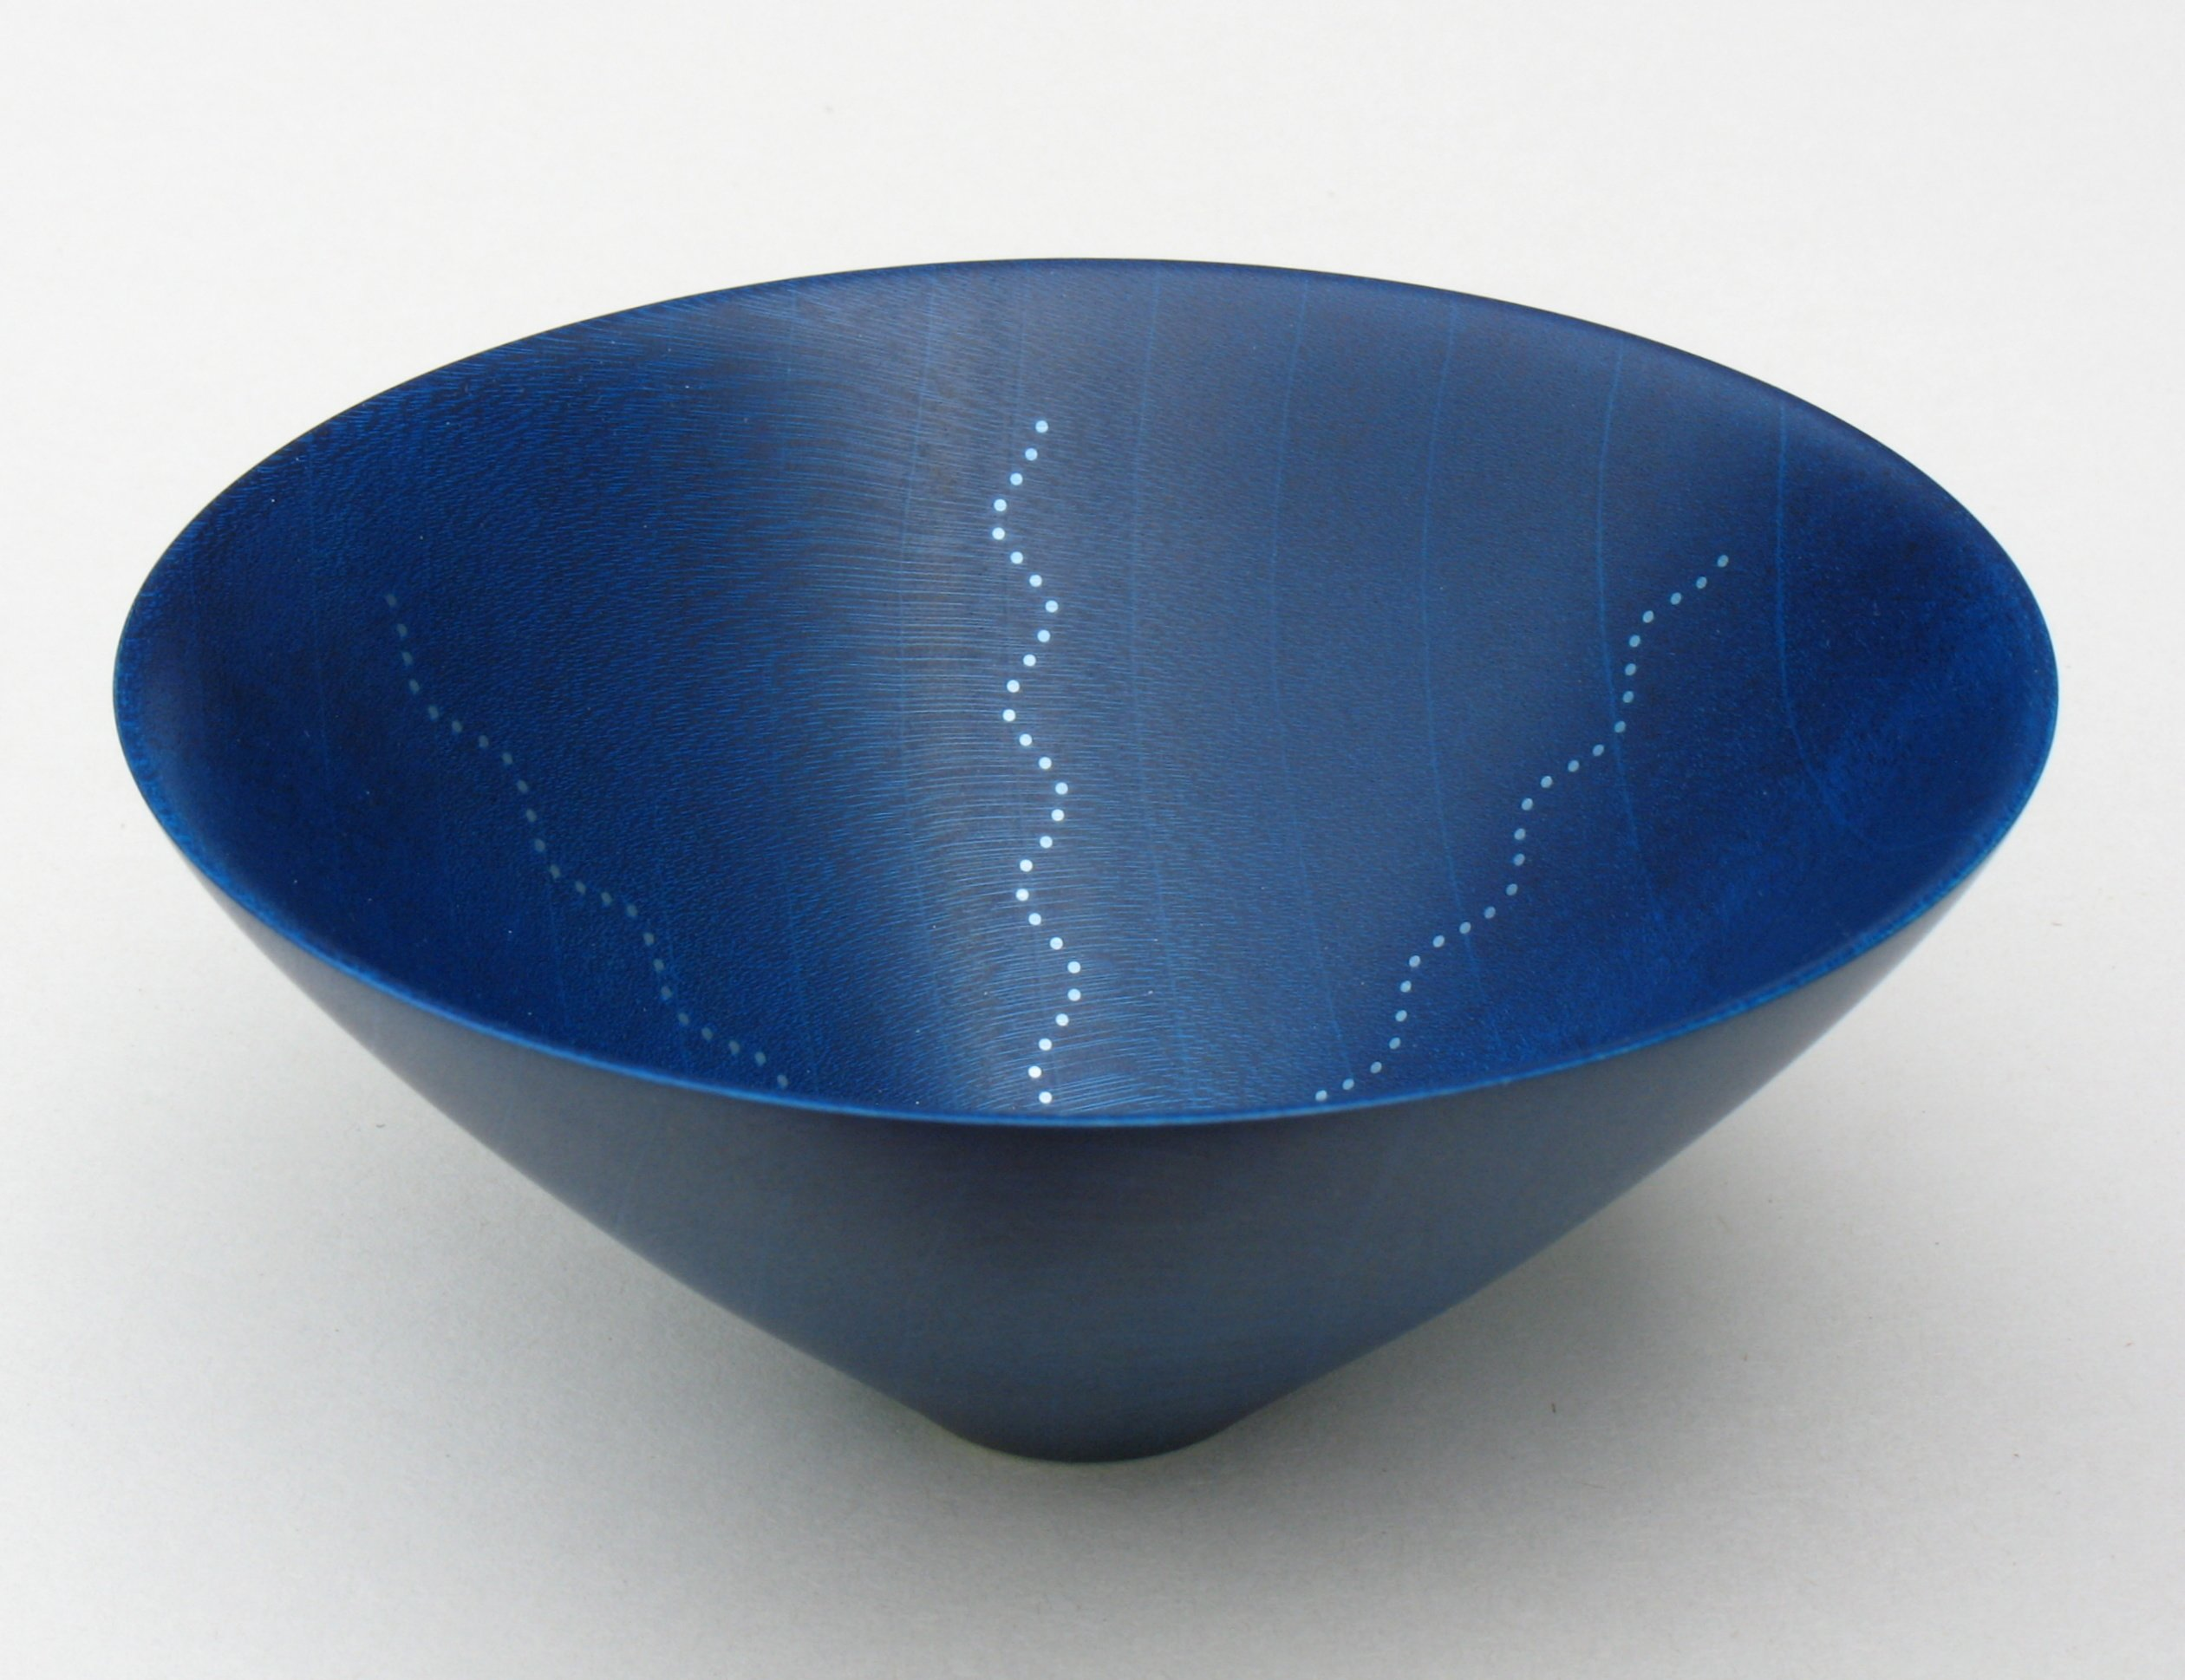 Roger Bennett, Blue Bowl, coloured sycamore bowl, (blue) inlaid with 6 undulating lines of silver dots, 12 (d) x 12 (h)cm